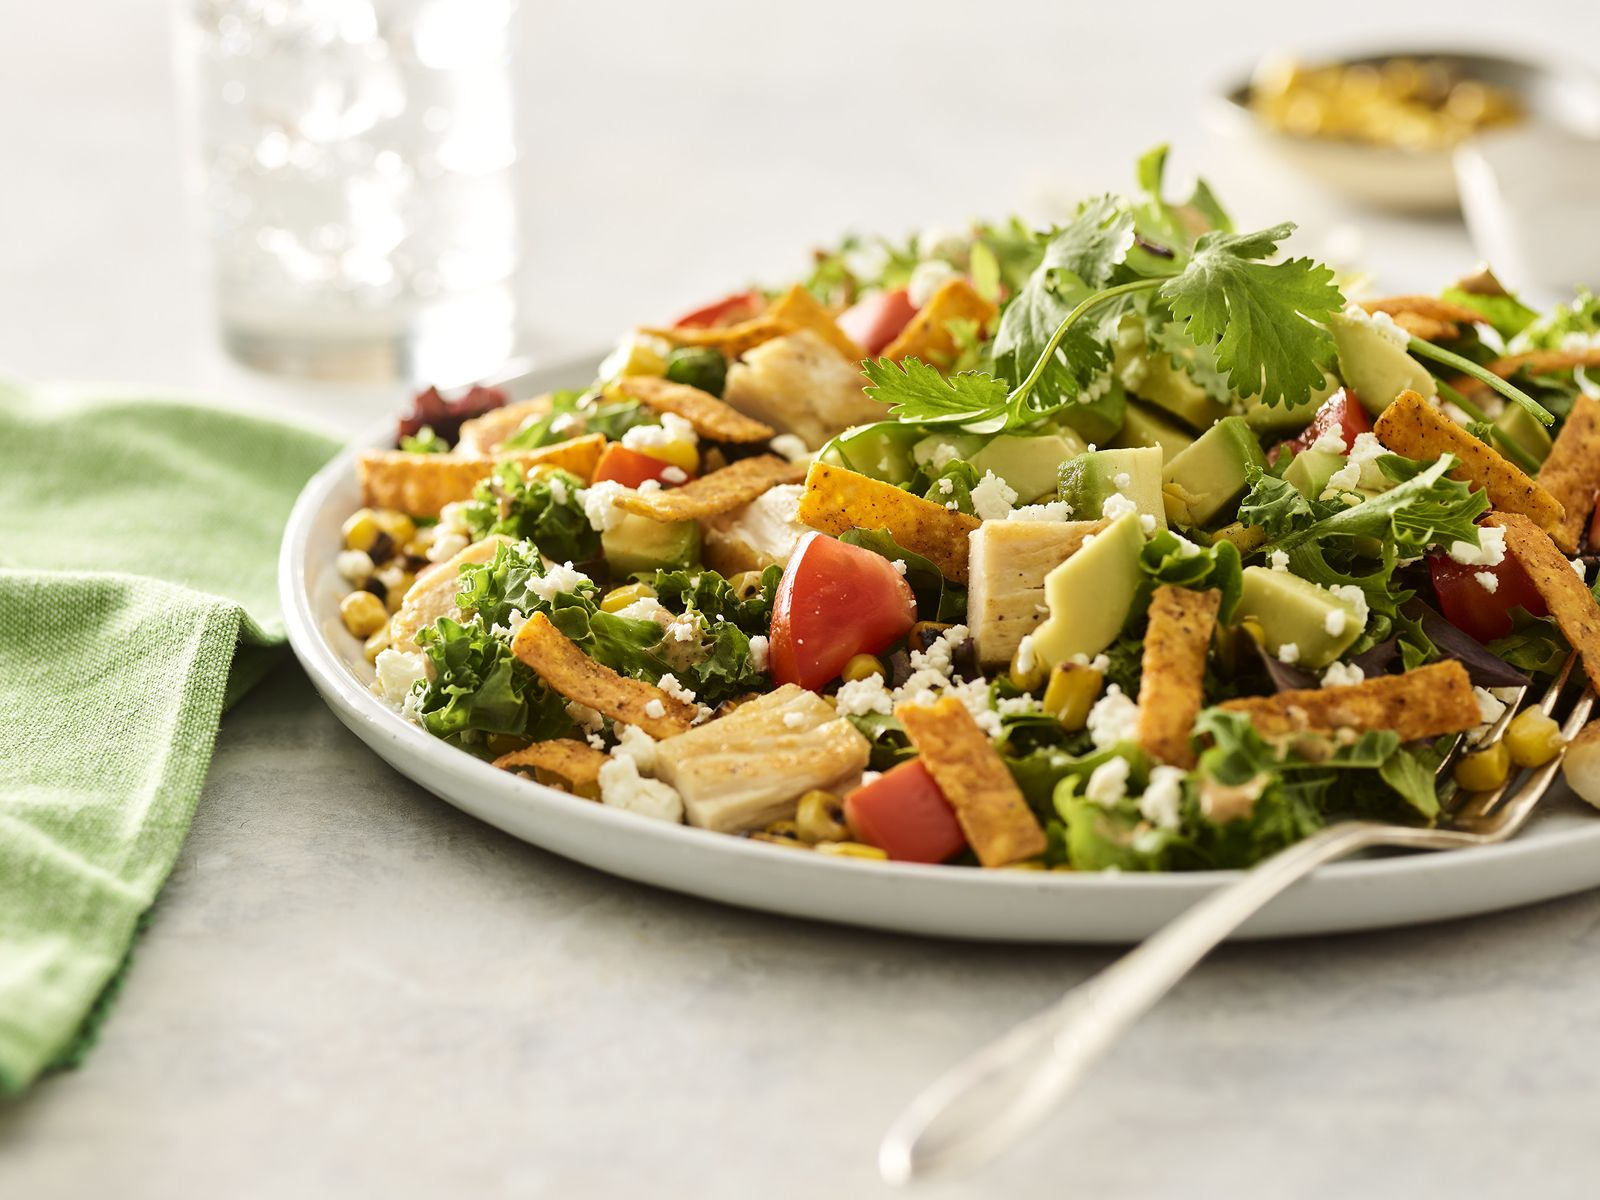 Noodles & Company is Bringing the Flavor This Summer with the Launch of Three New Salads